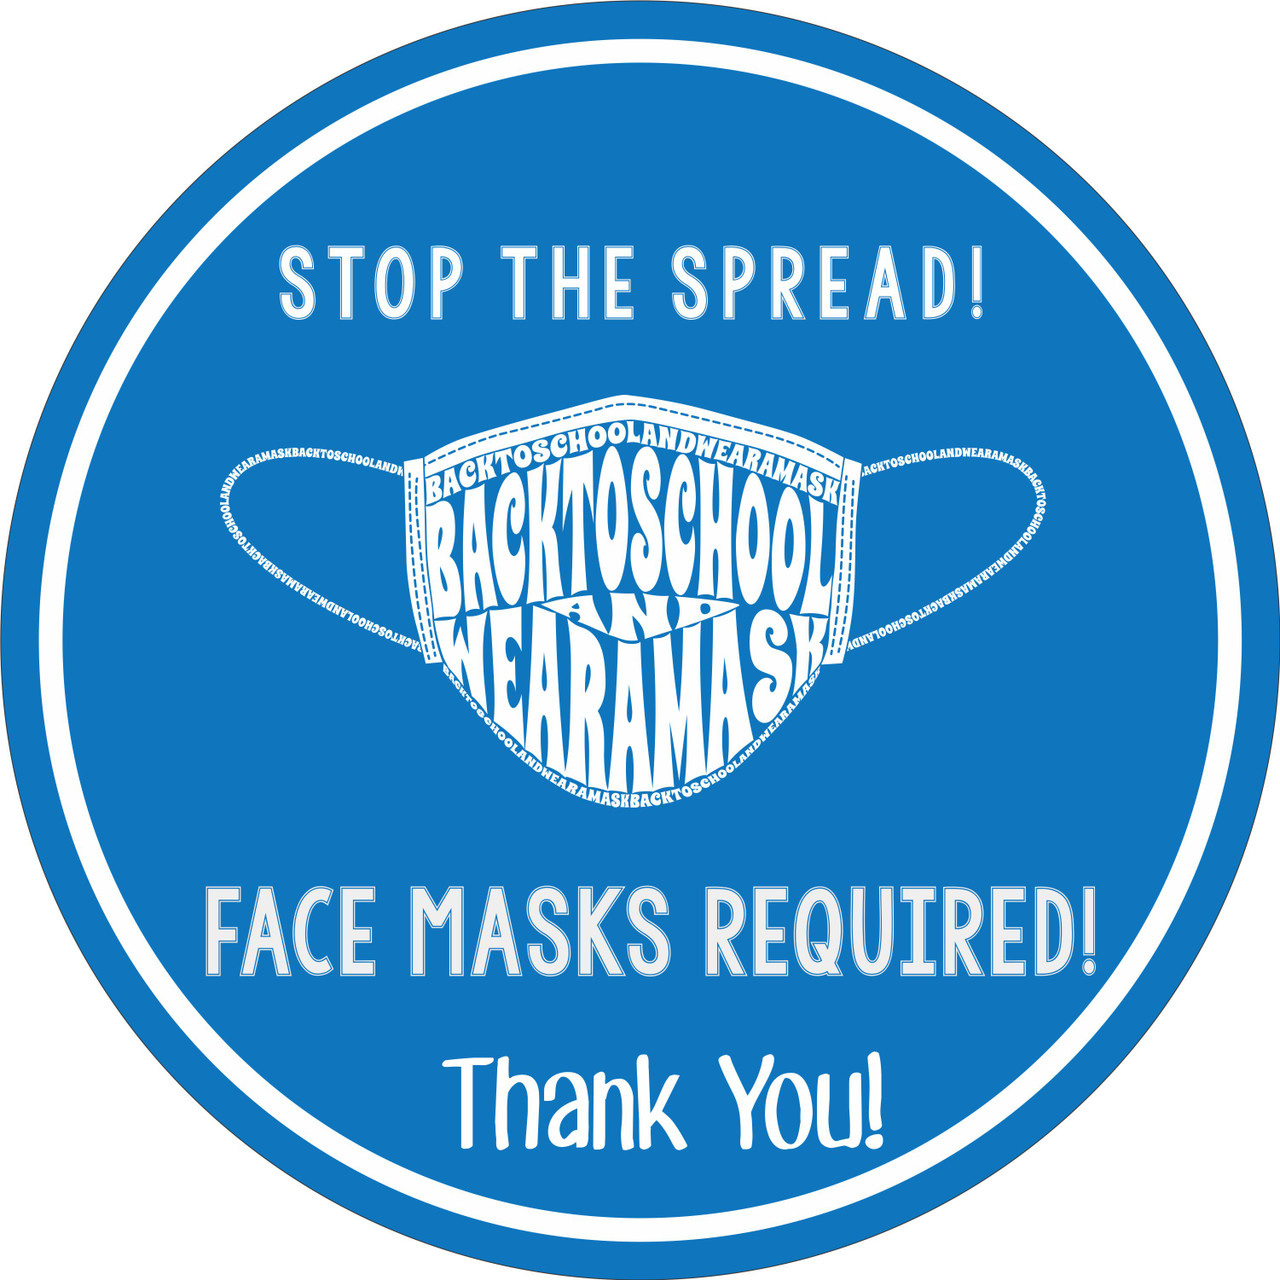 Back To School Face Mask Required Floor Decal | Covid-19 Floor Sticker | Coronavirus Floor Decal | Social Distancing Floor Sign | Pandemic Floor Sticker Decal